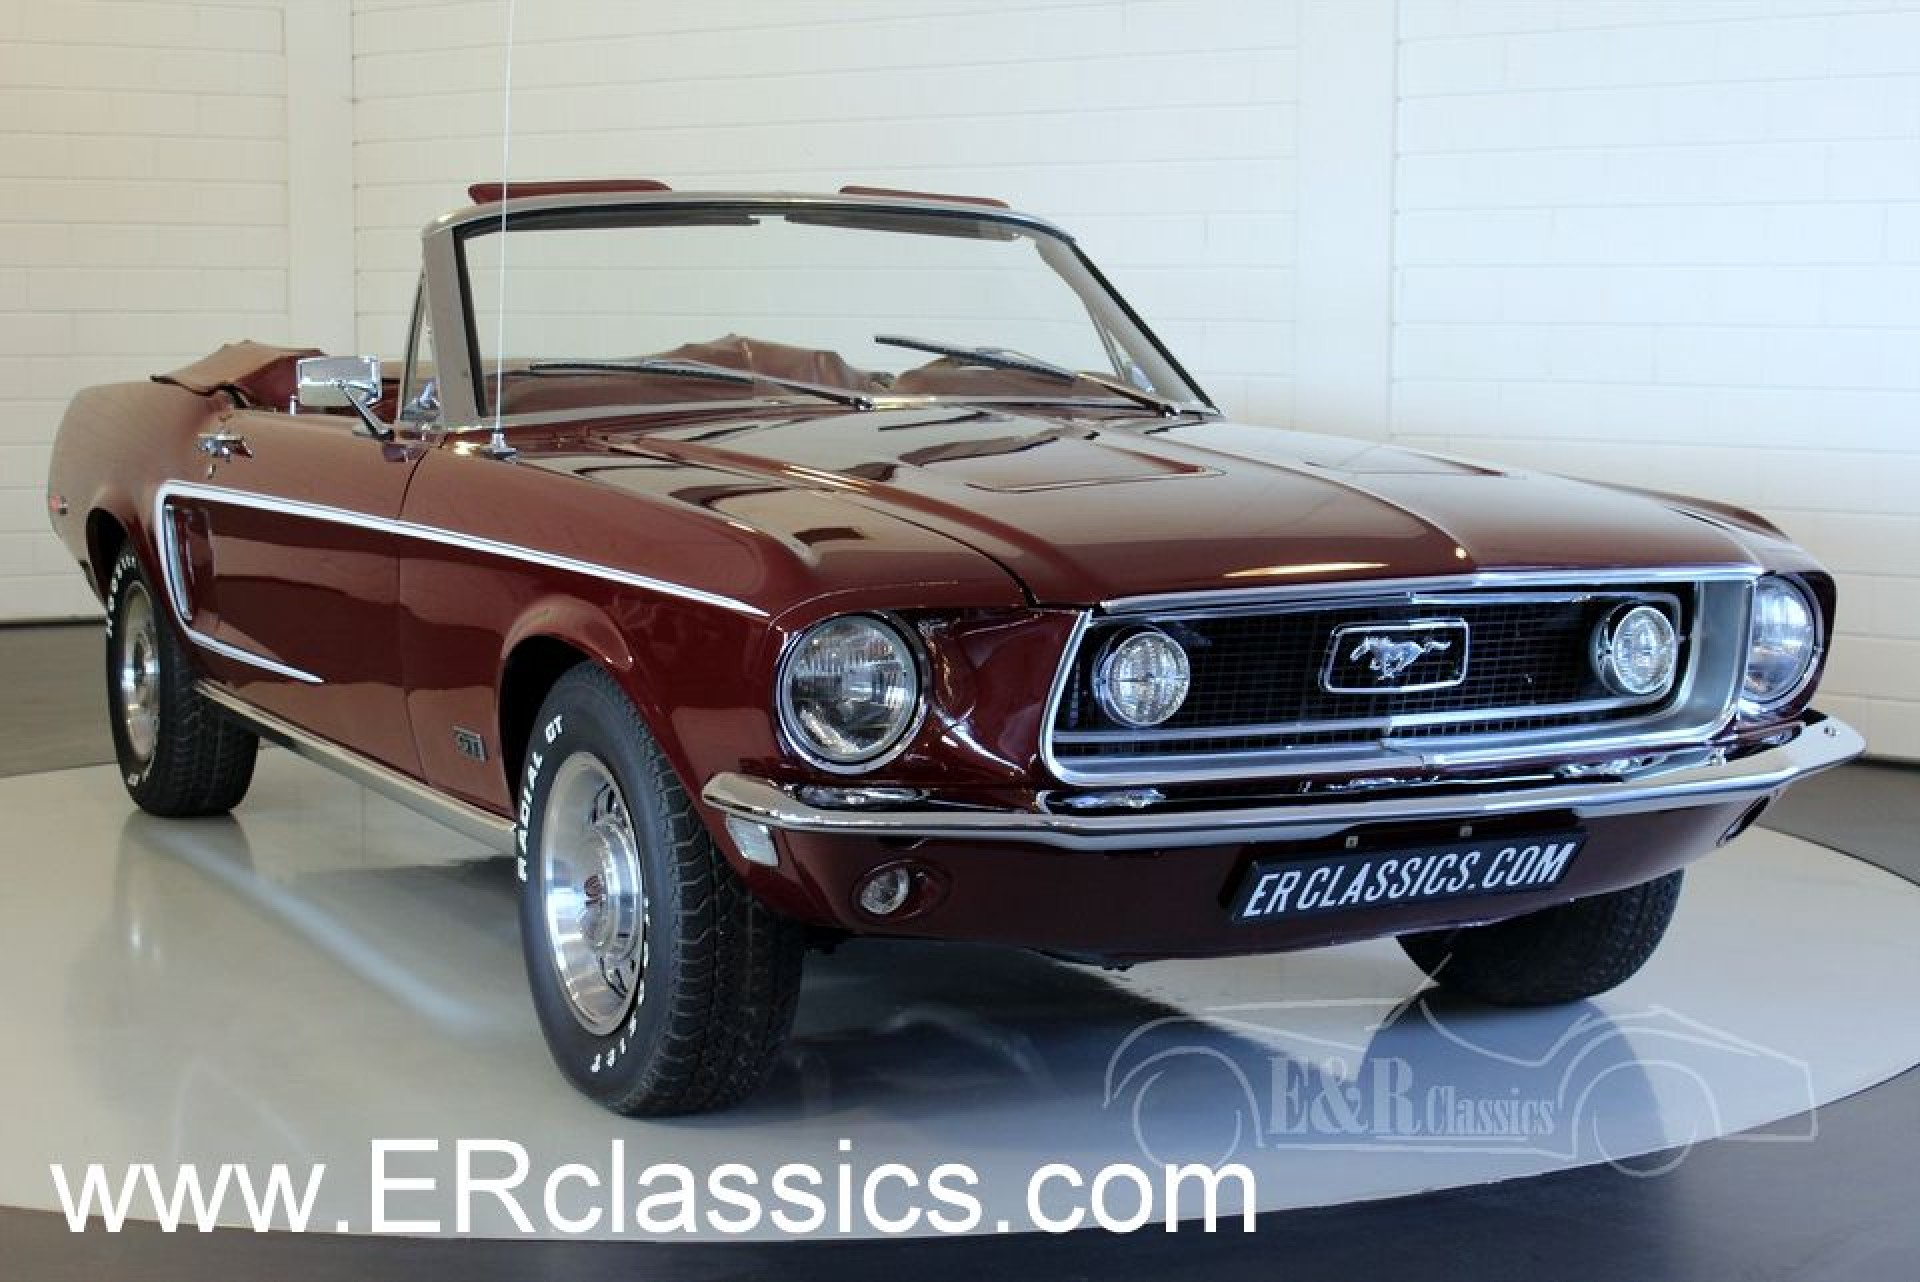 Ford mustang gt cabriolet 1968 view all photos